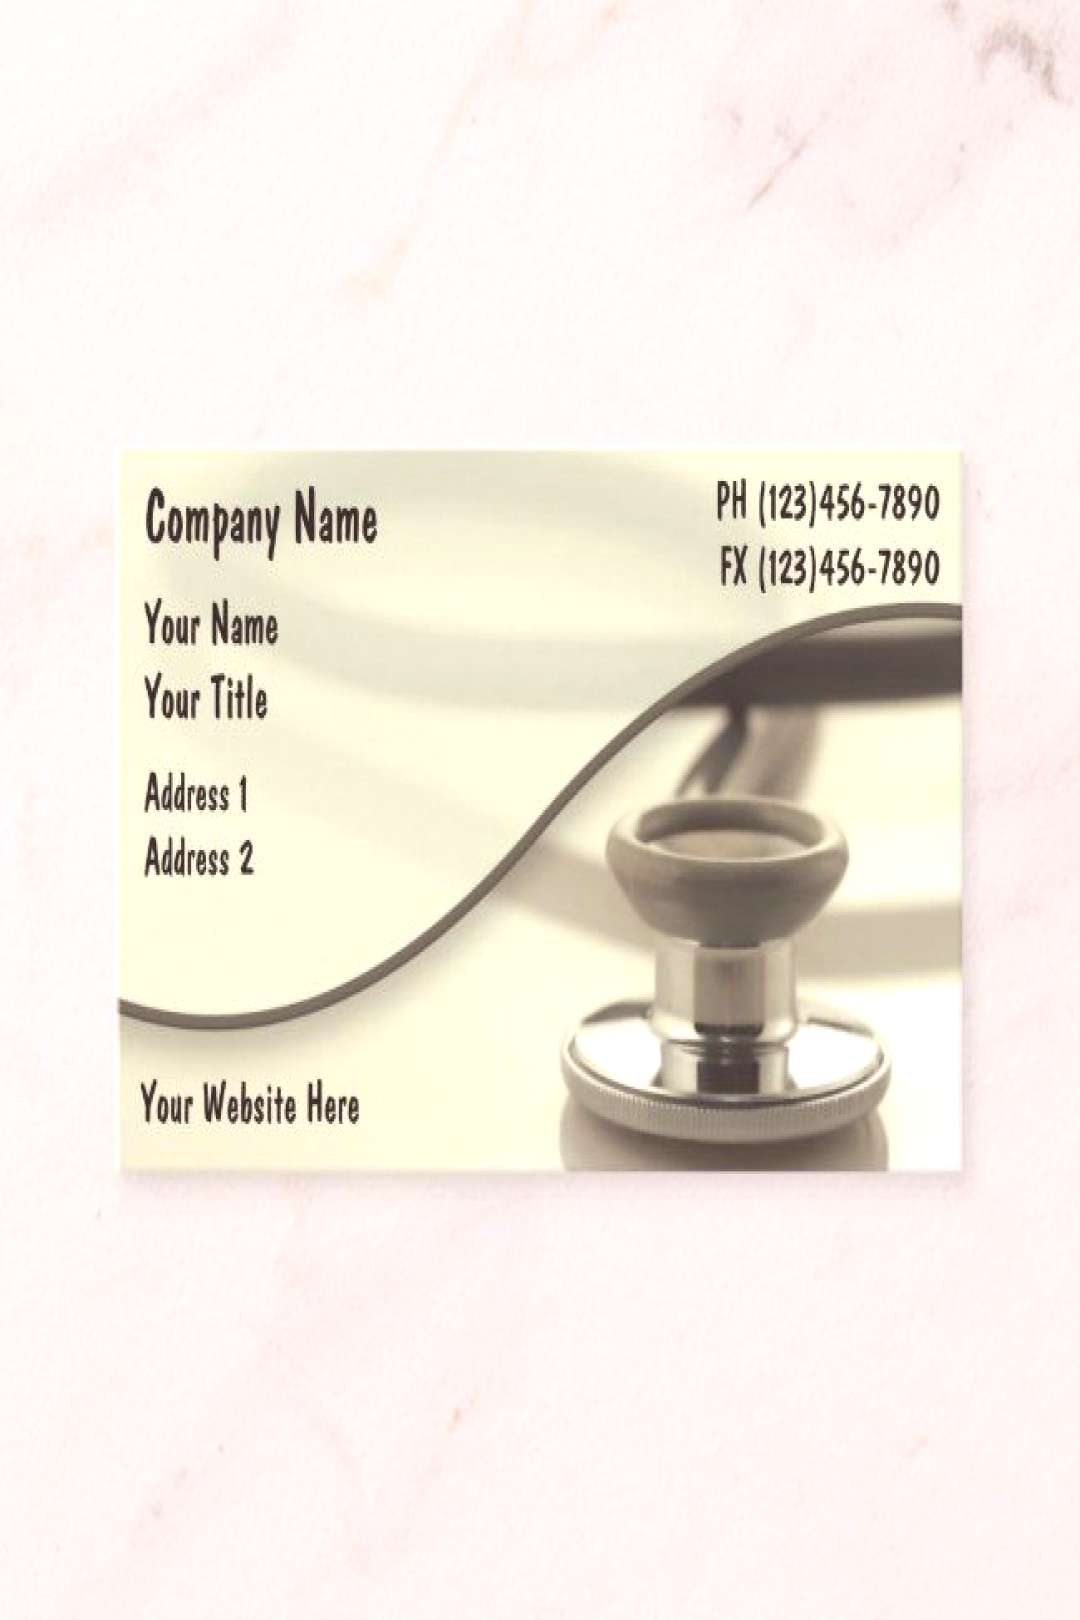 Creative Medical Theme Stethoscope Design Business Card - Show your appreciation for those on the f